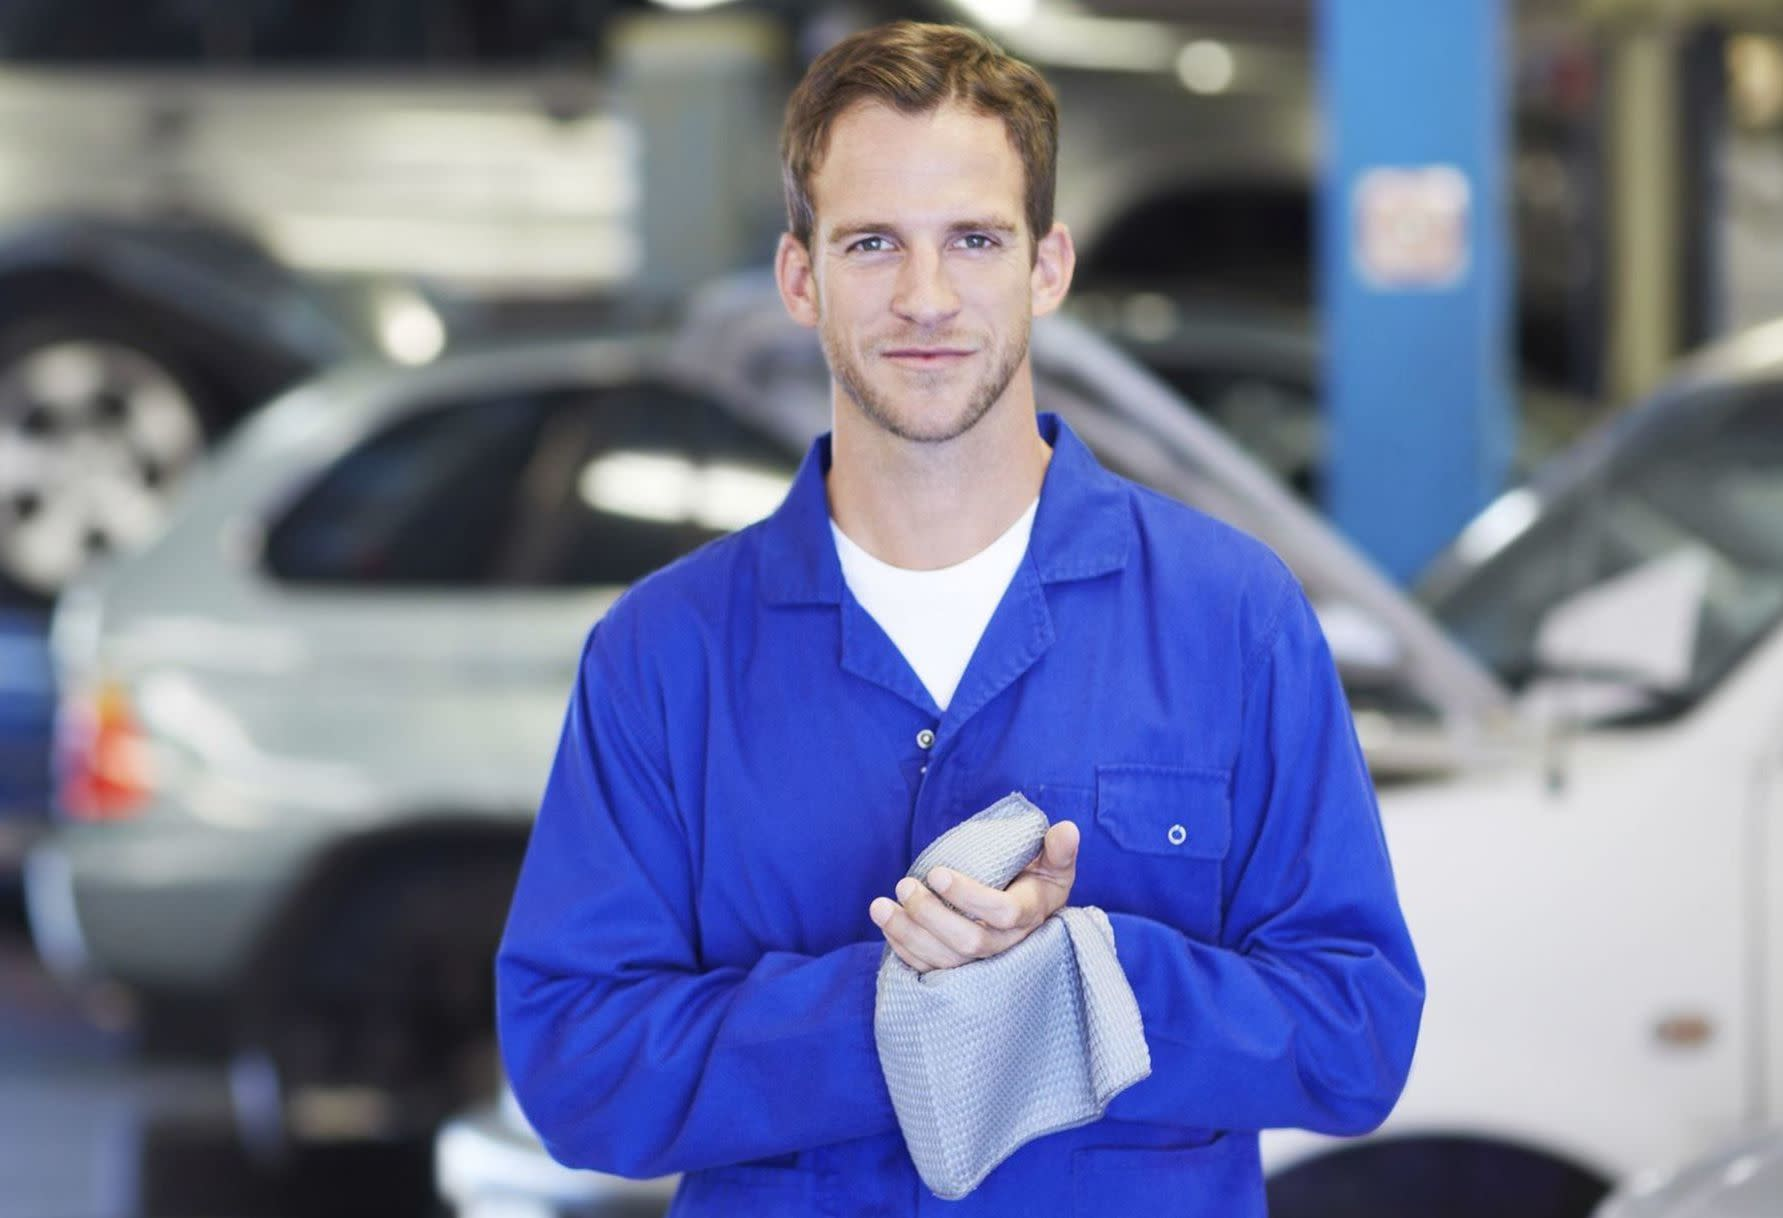 Let Us Take Care of Your Vehicle!